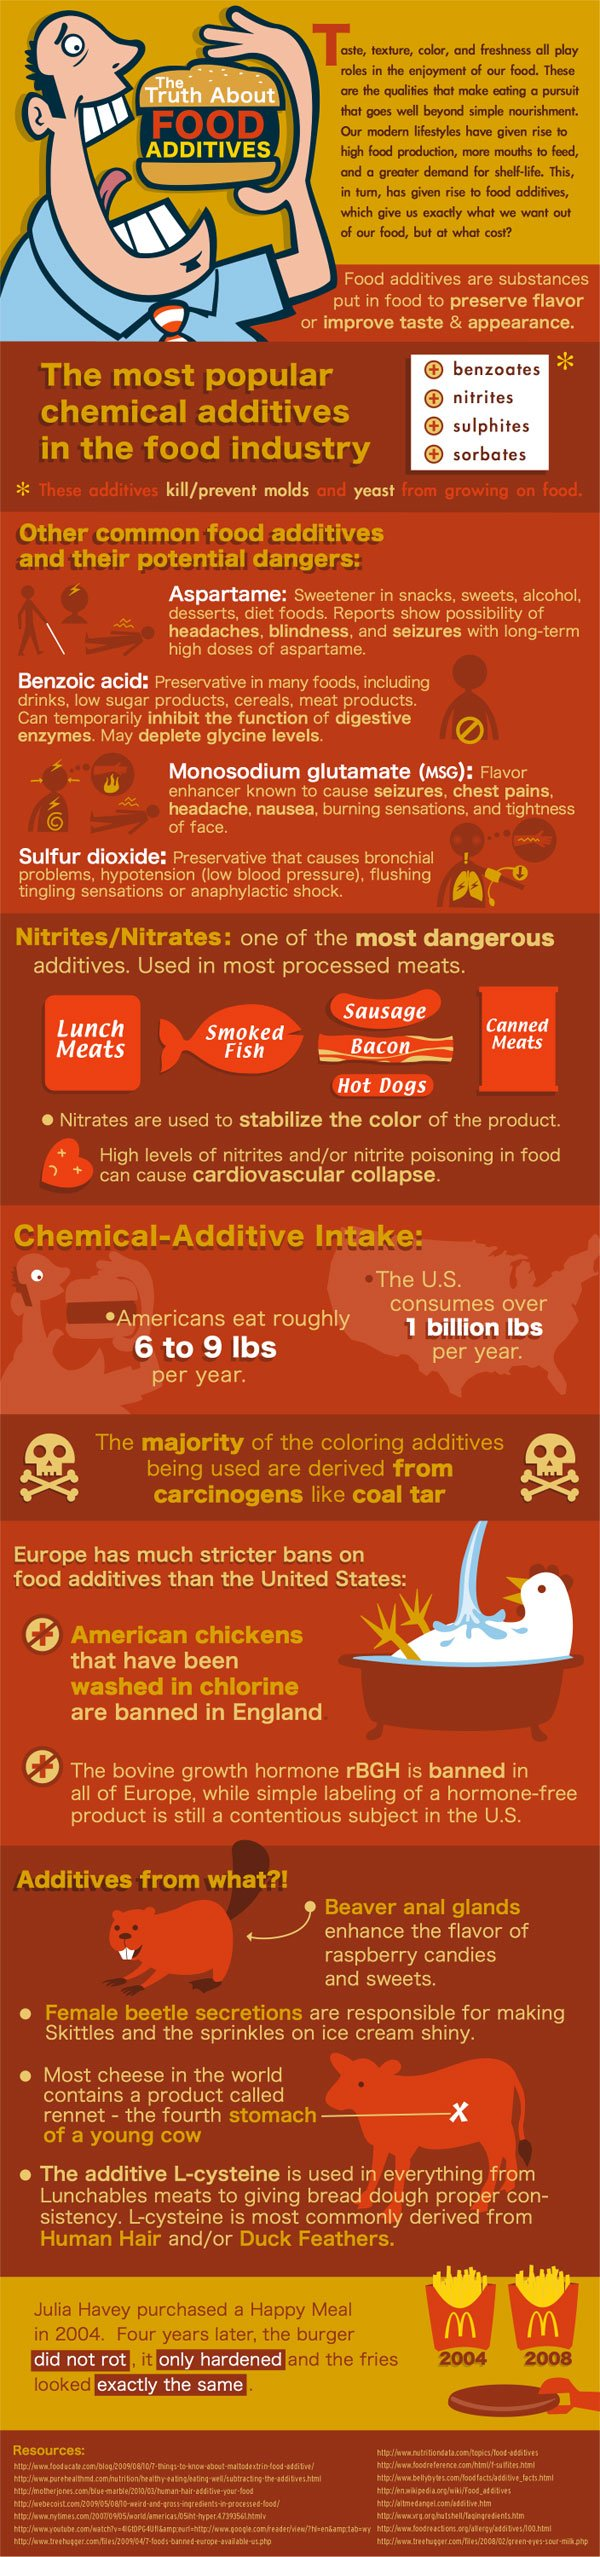 food additives info xl The Truth About Food Additives (Infographic)